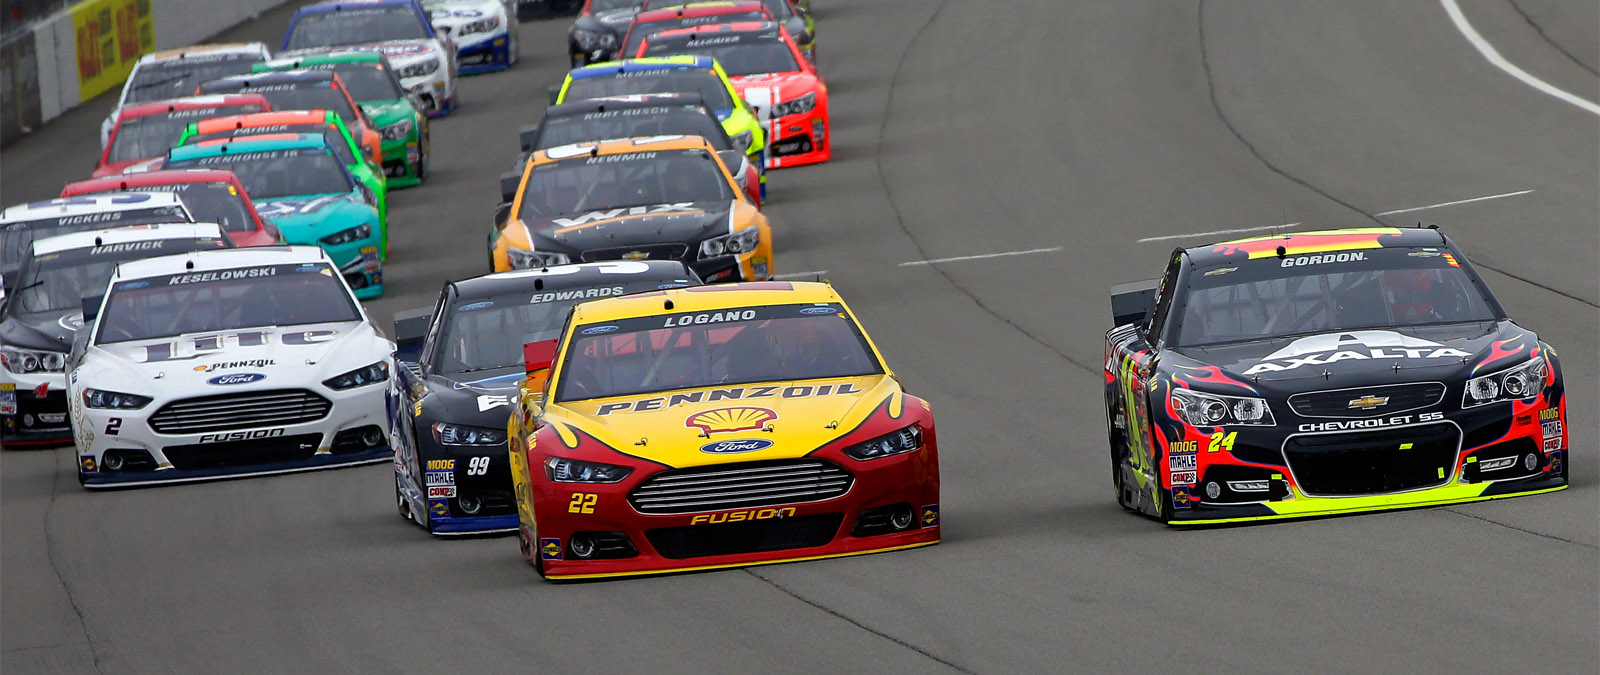 Logano Racing For the Lead at Michigan